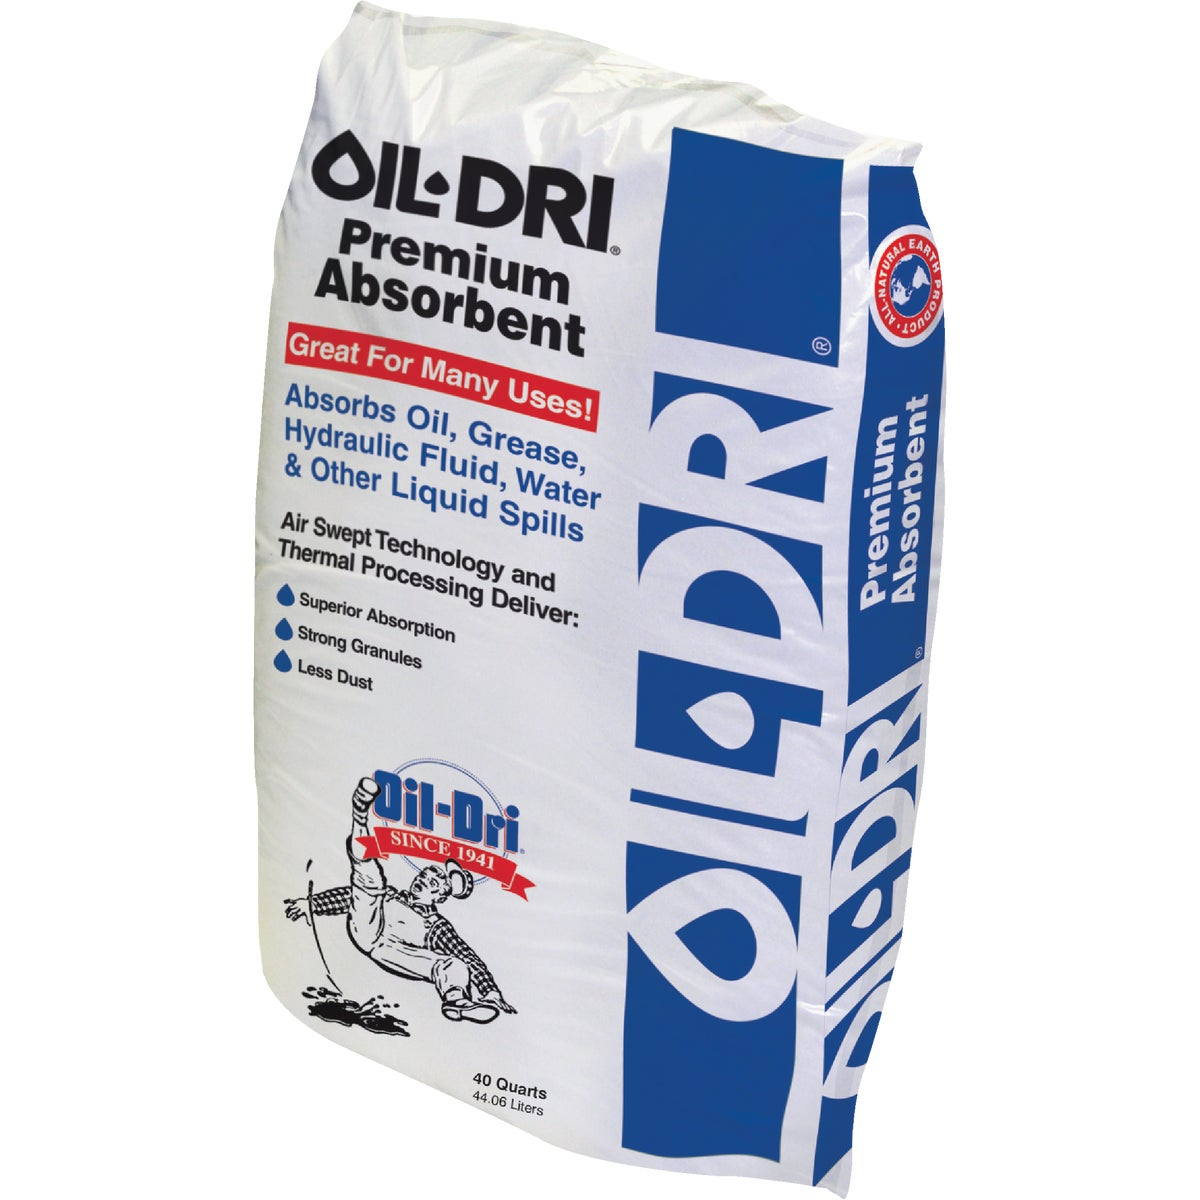 50LB OIL DRI ABSORBENT - I05090-G40 by Oil Dri Corp